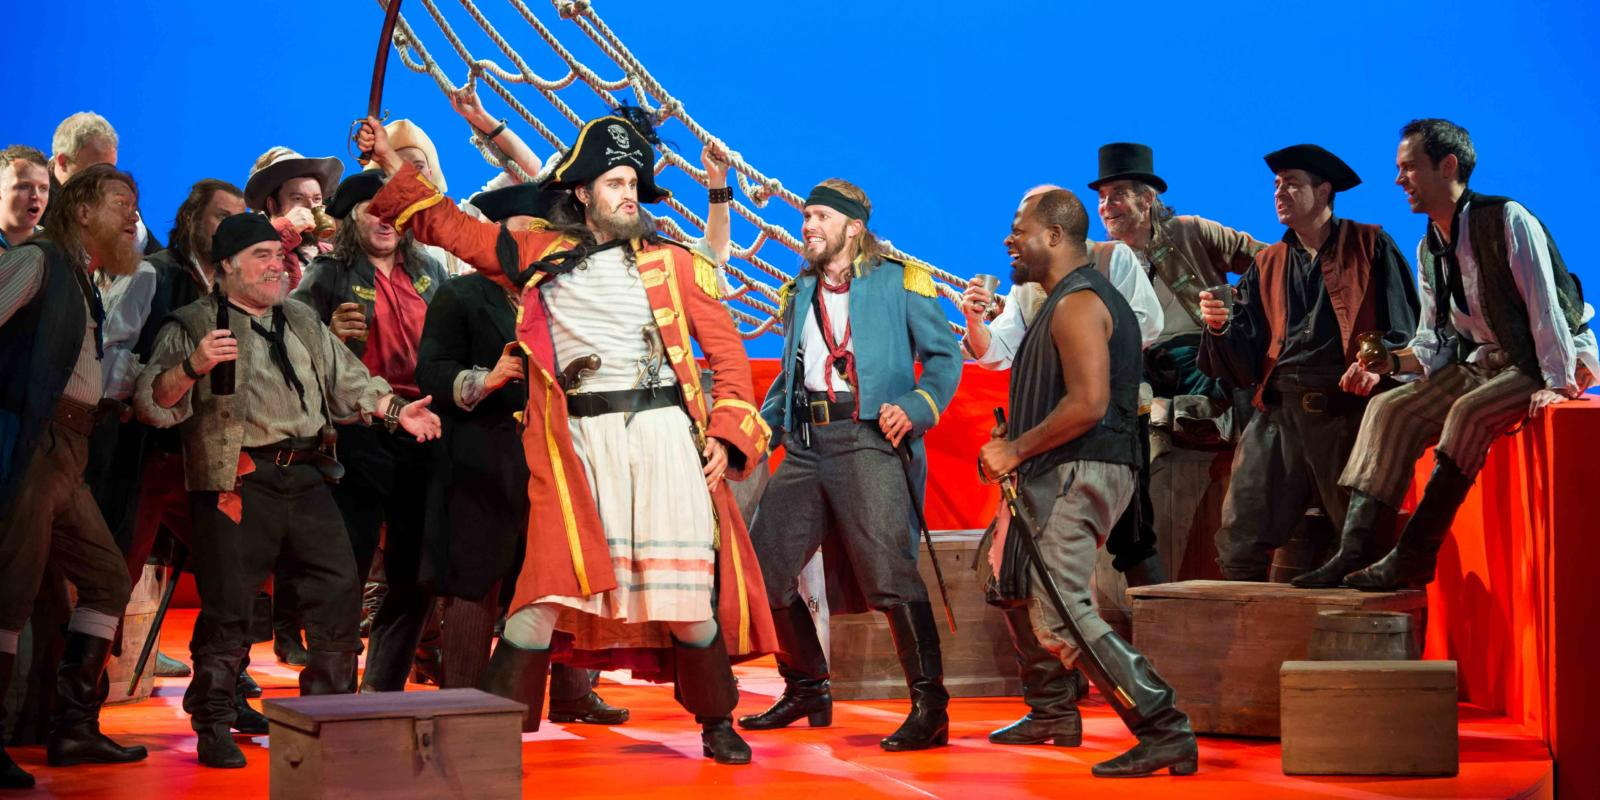 ENO's The Pirates of Penzance - Ashley Riches as The Pirate King, Johnny Herford as Samuel and ENO Chorus. Photo by Tom Bowles